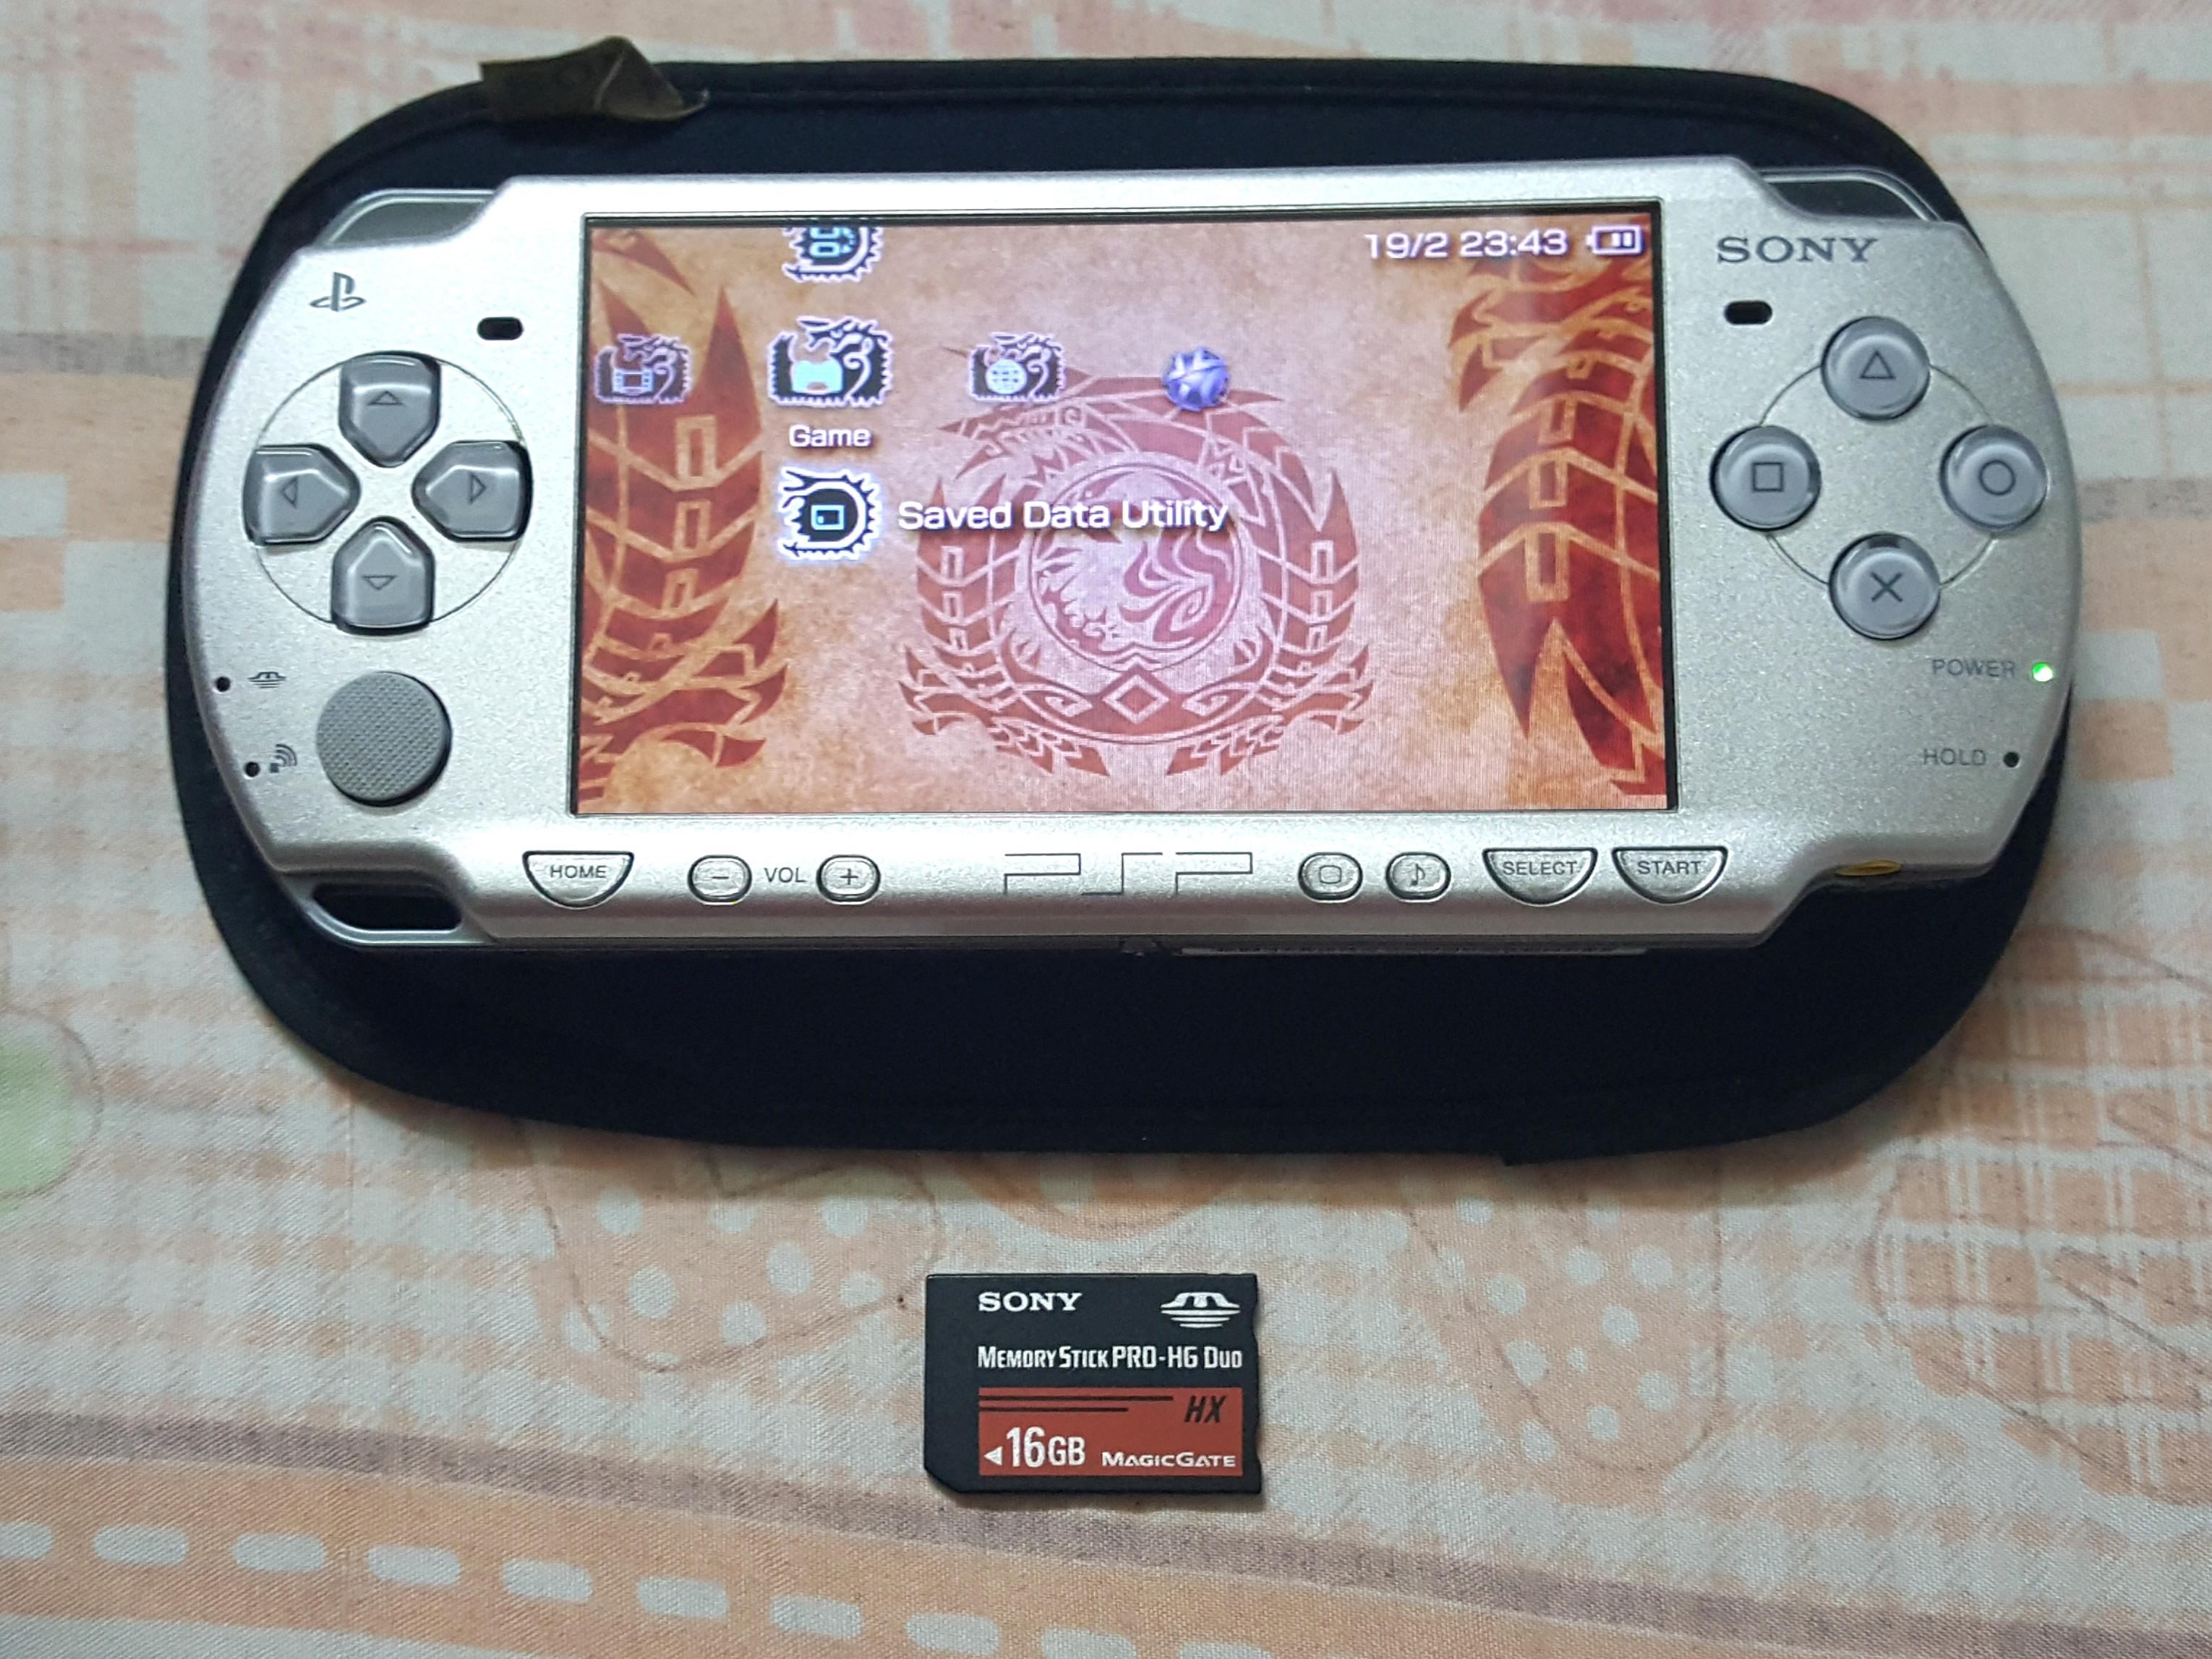 PSP 2006, It's Silver Color * NO CHARGER! *.  It Comes With 16GB Memory Card + 3 Games Has Been Added In The 16GB Card.  100% Working PSP!.